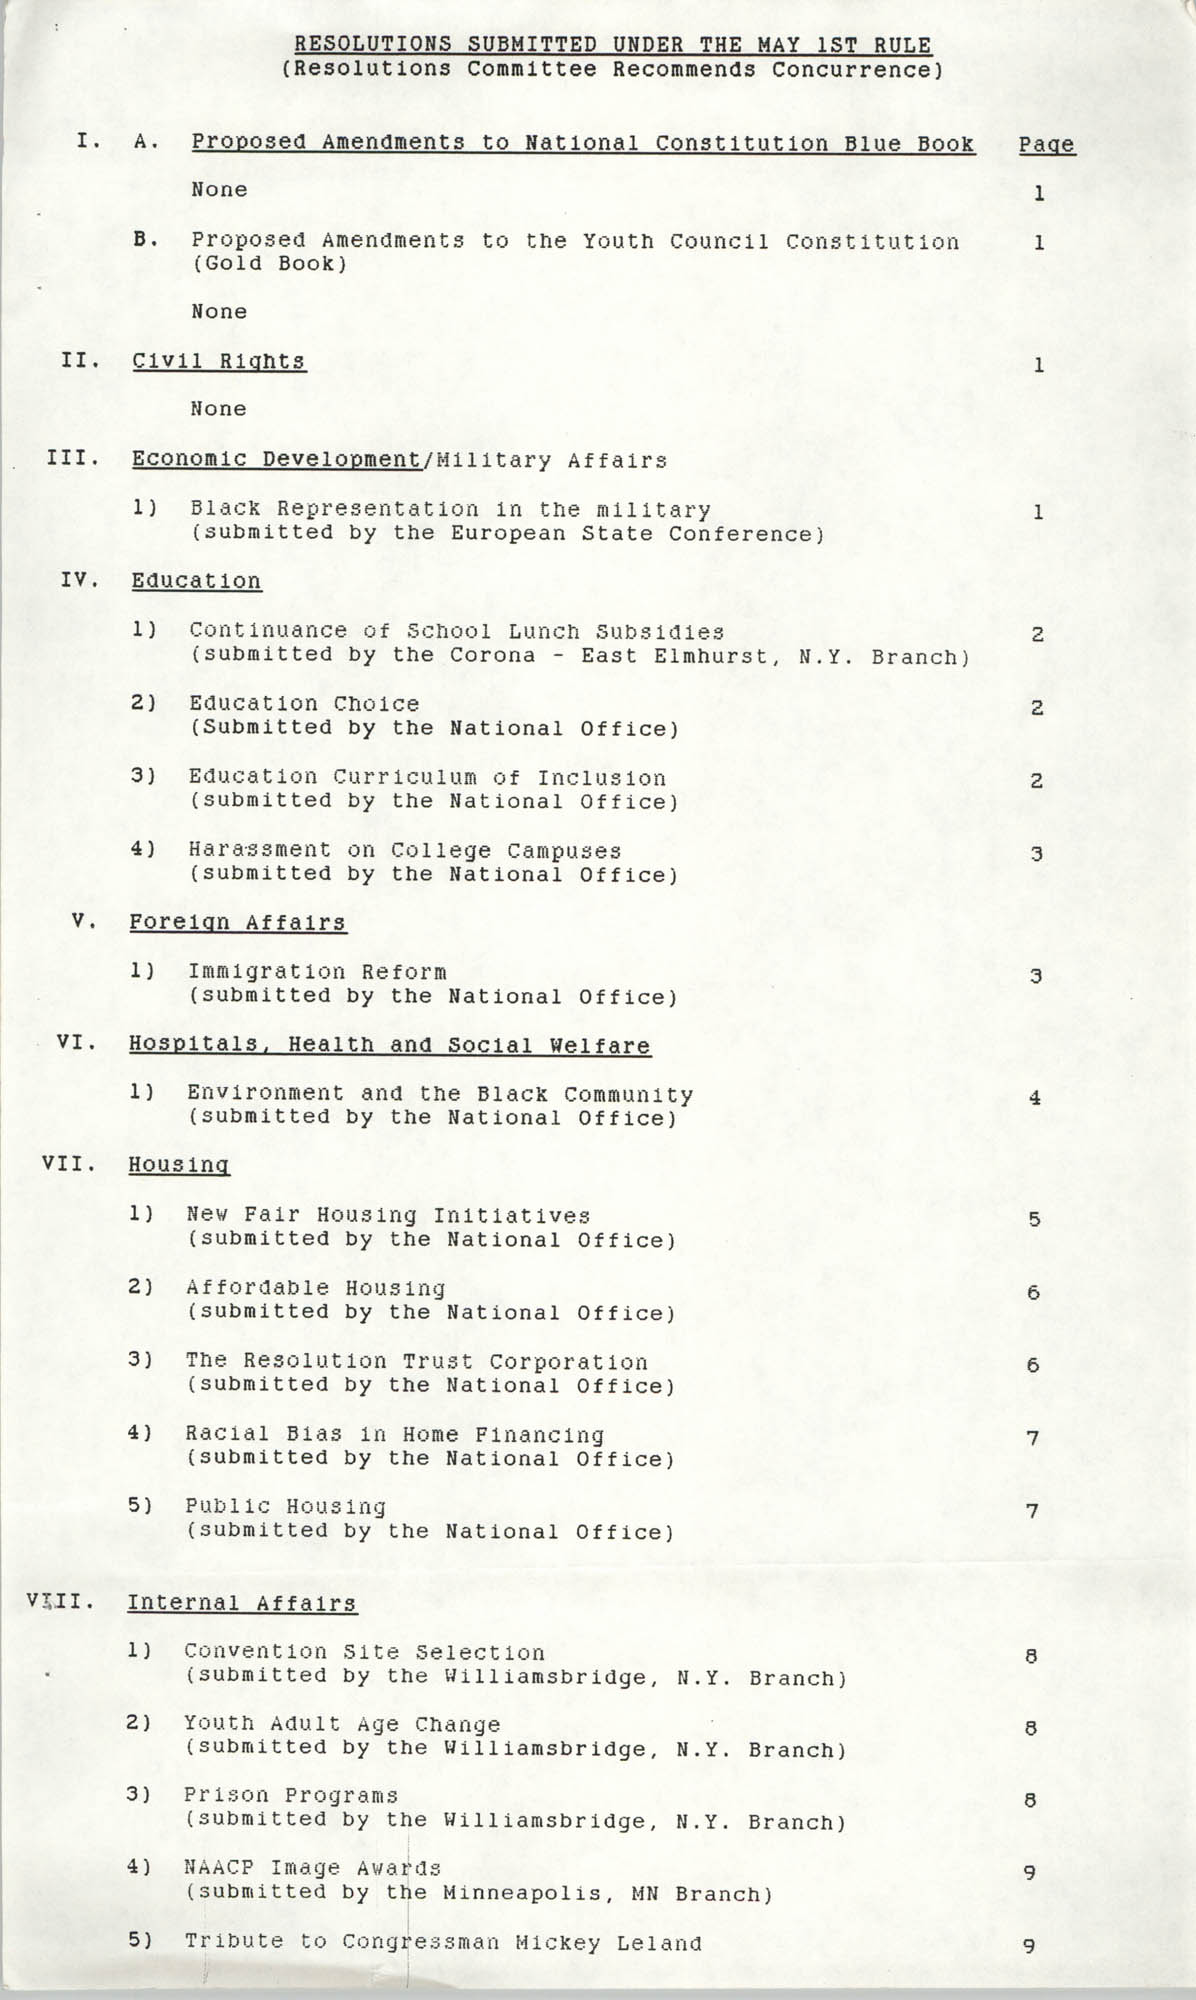 Resolutions Submitted Under Article X, Section 2 of the Constitution of the NAACP, 1990, Outline